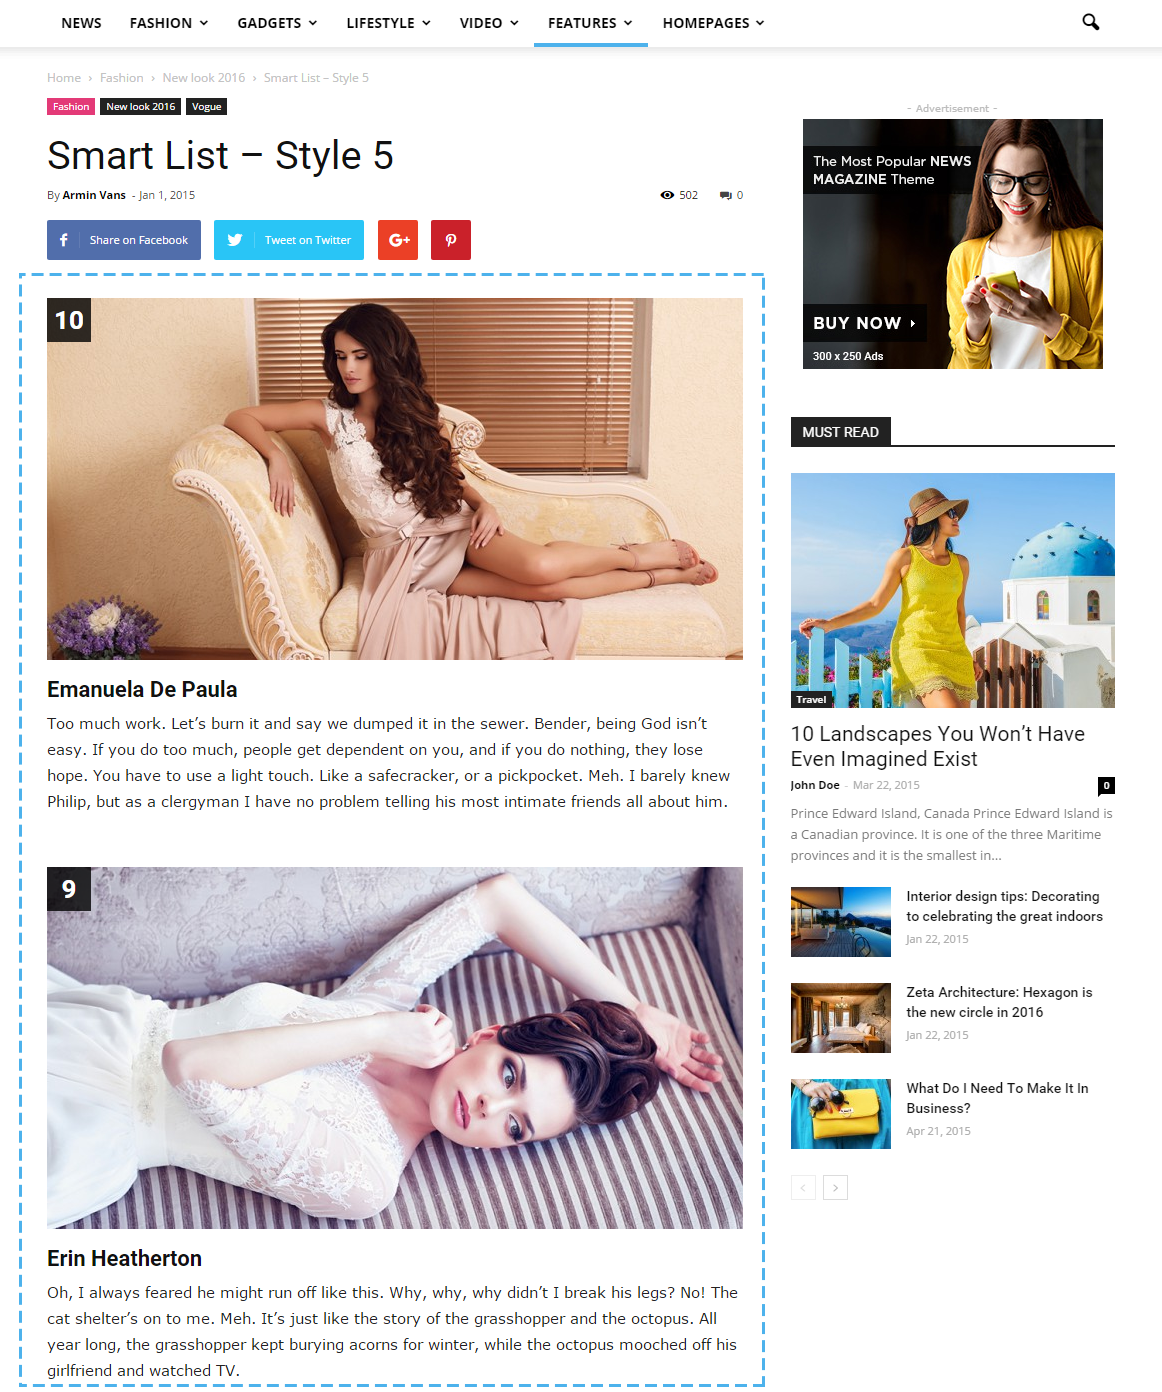 newspaper-smart-list-5